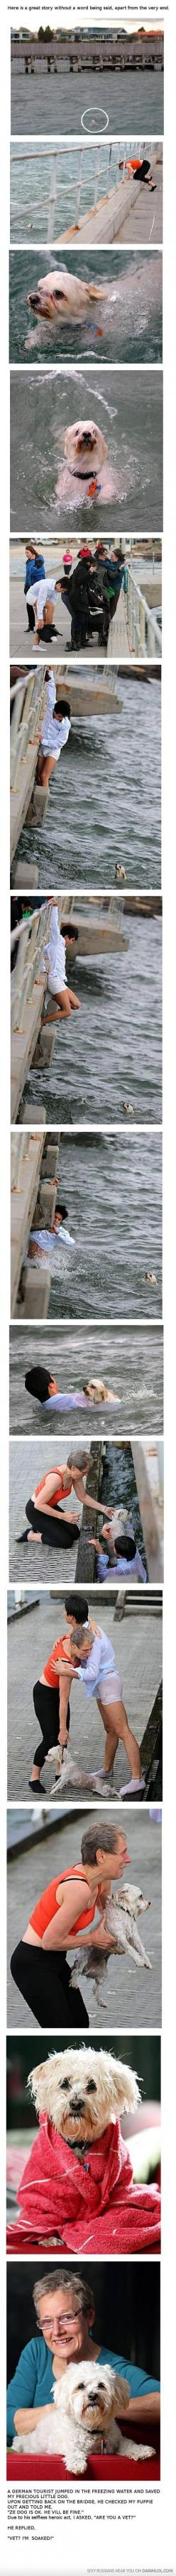 <3: Saves Dog, Amazing Stories, Sweet, Hero, Humanity Restored, German, Faith Restored, Faith In Humanity, Acts Of Kindness